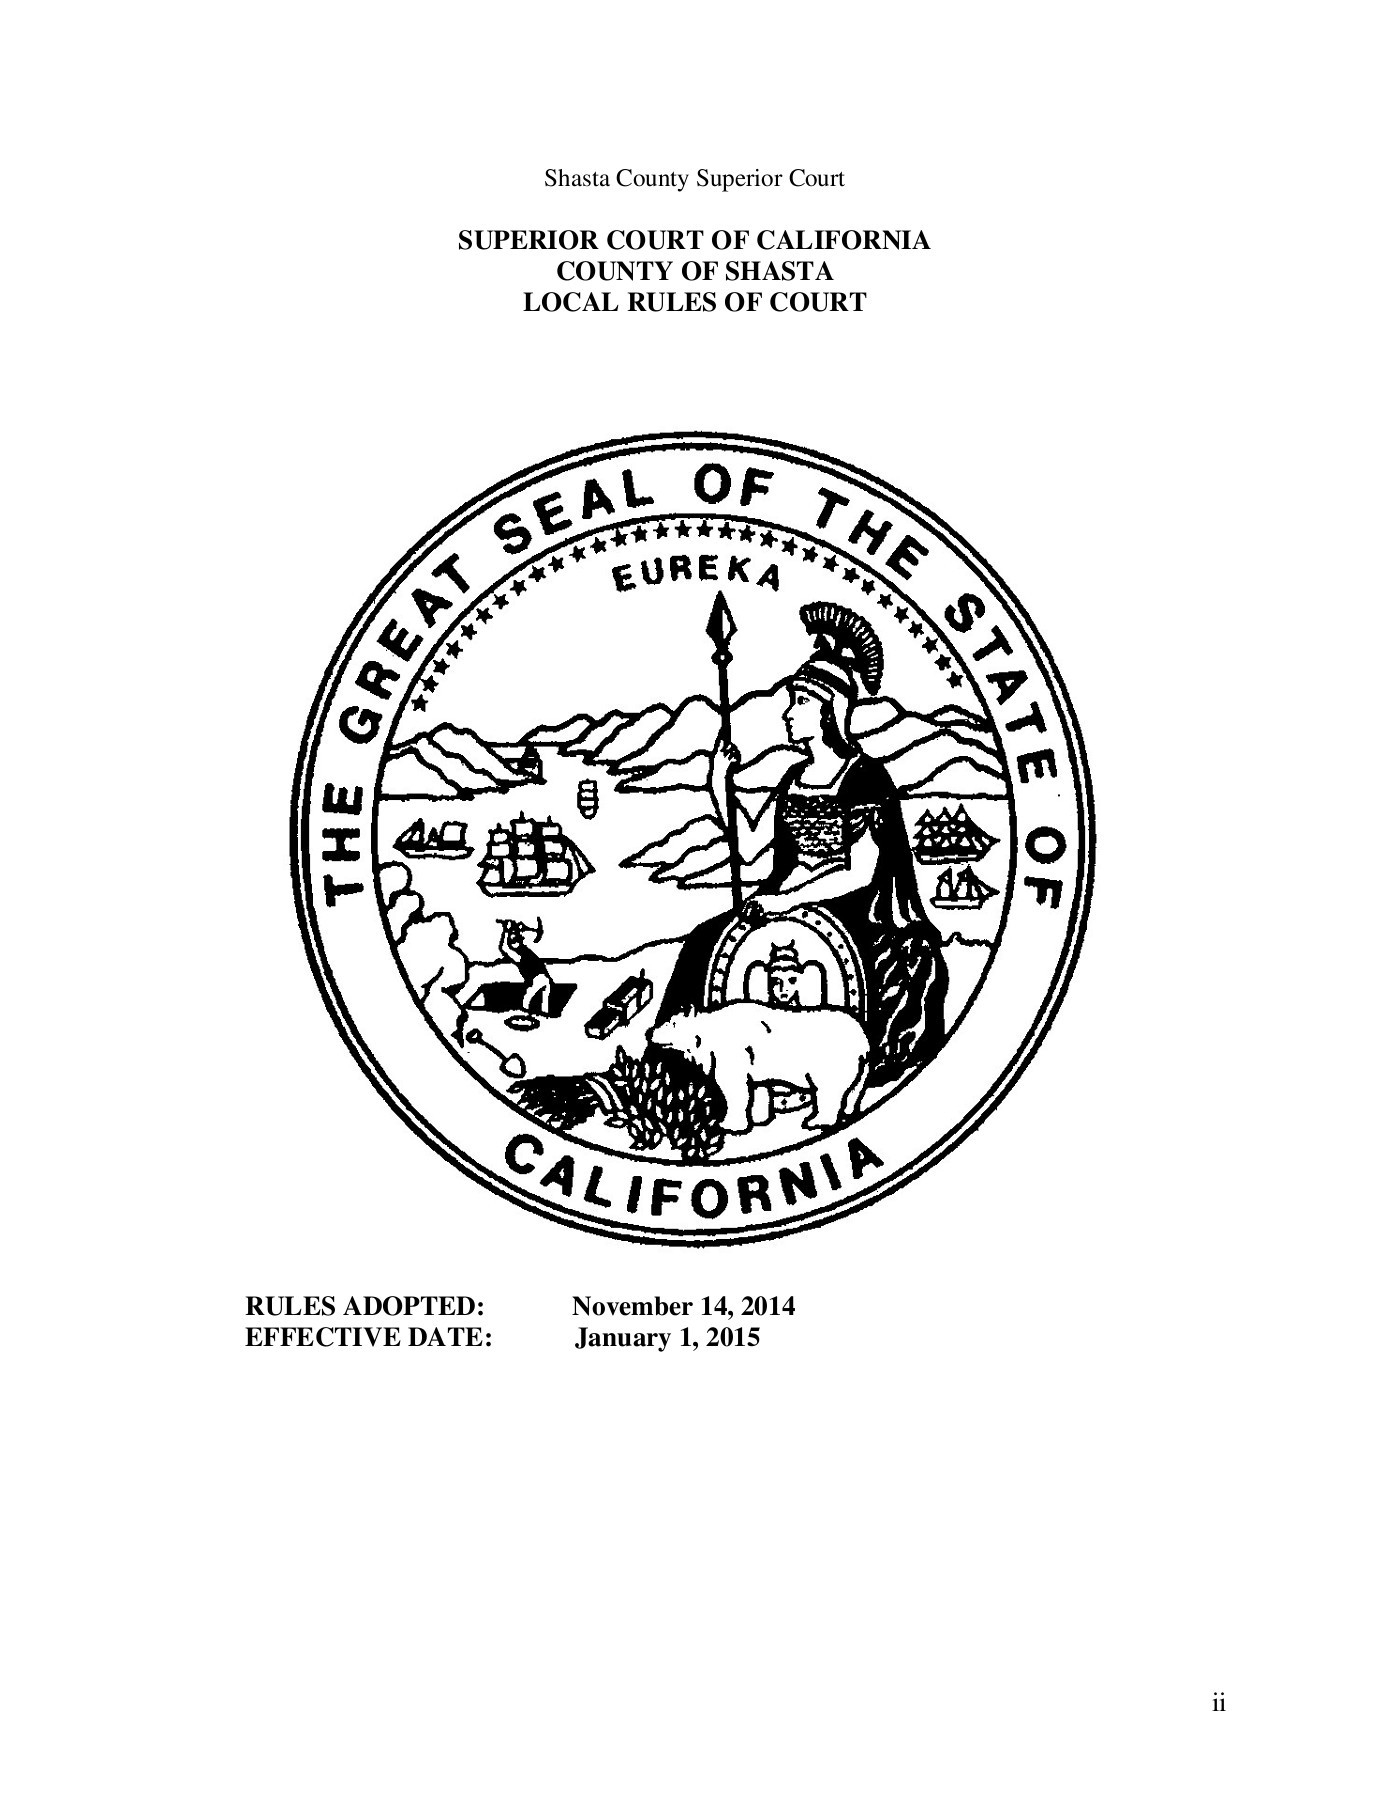 Local Rules - Superior Court Of California - County Of Intended For Shasta County Superior Court Calendar